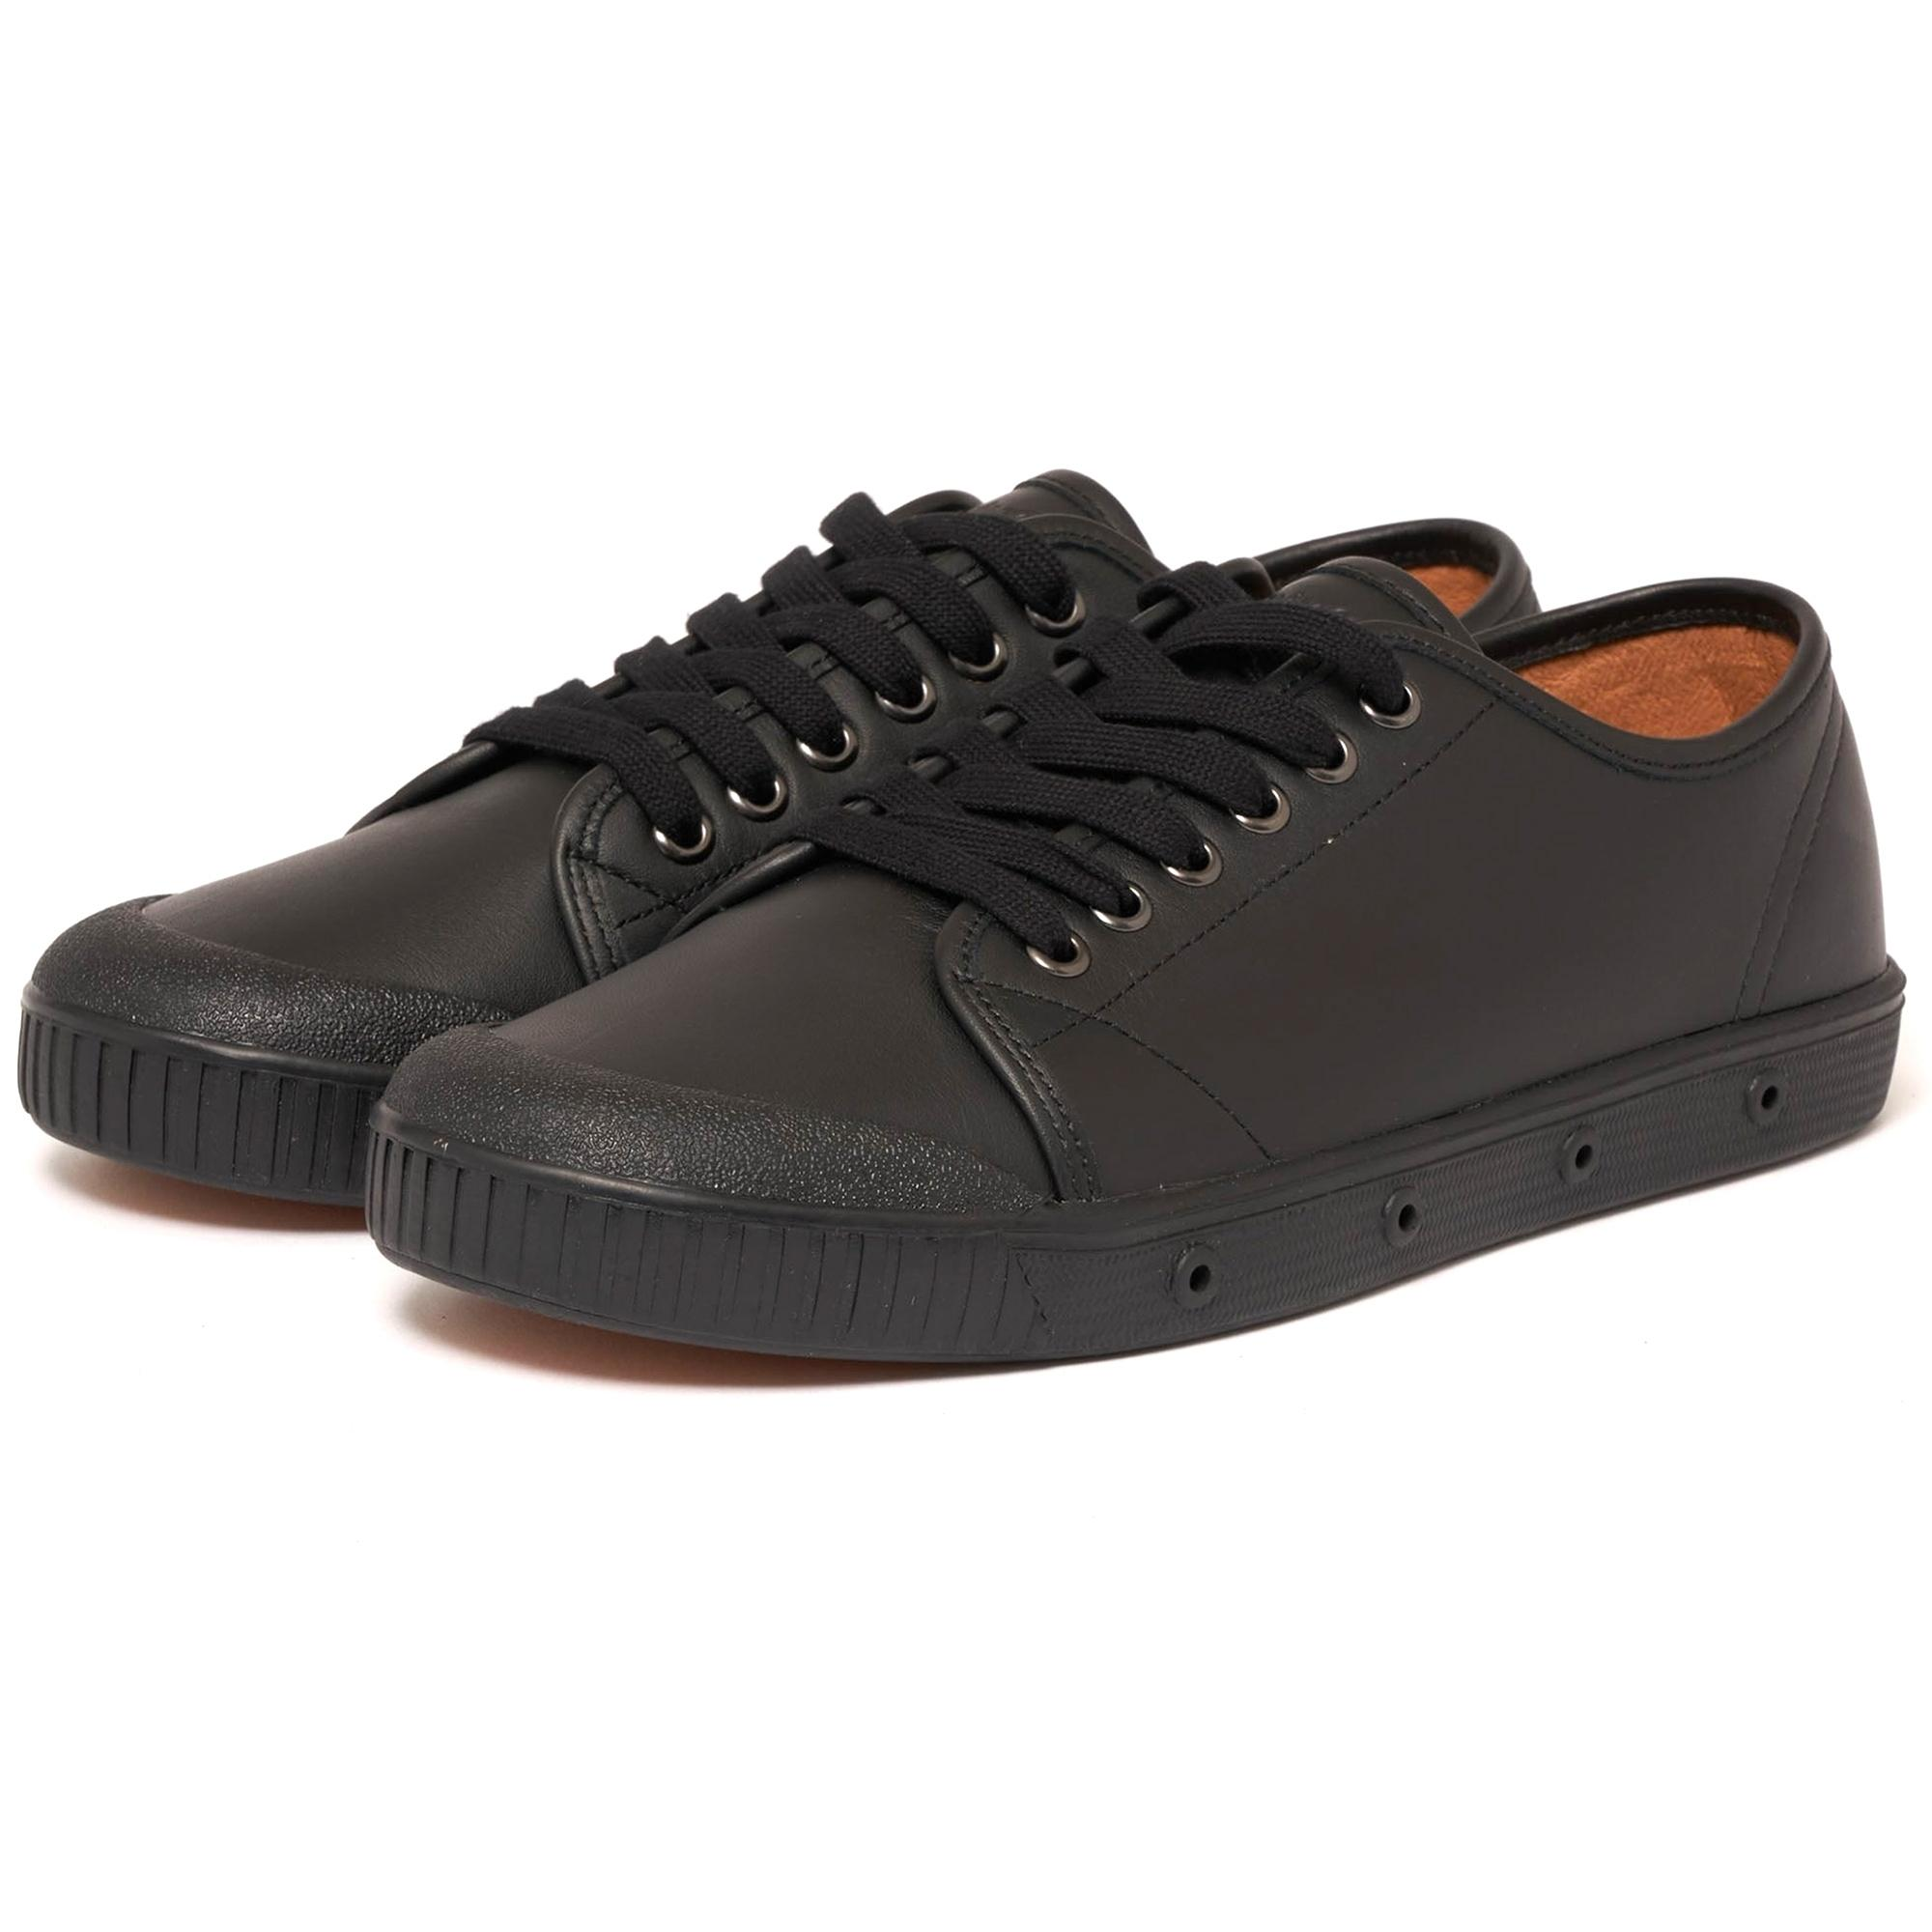 Spring Court Nappa Leather Shoes in Black for Men